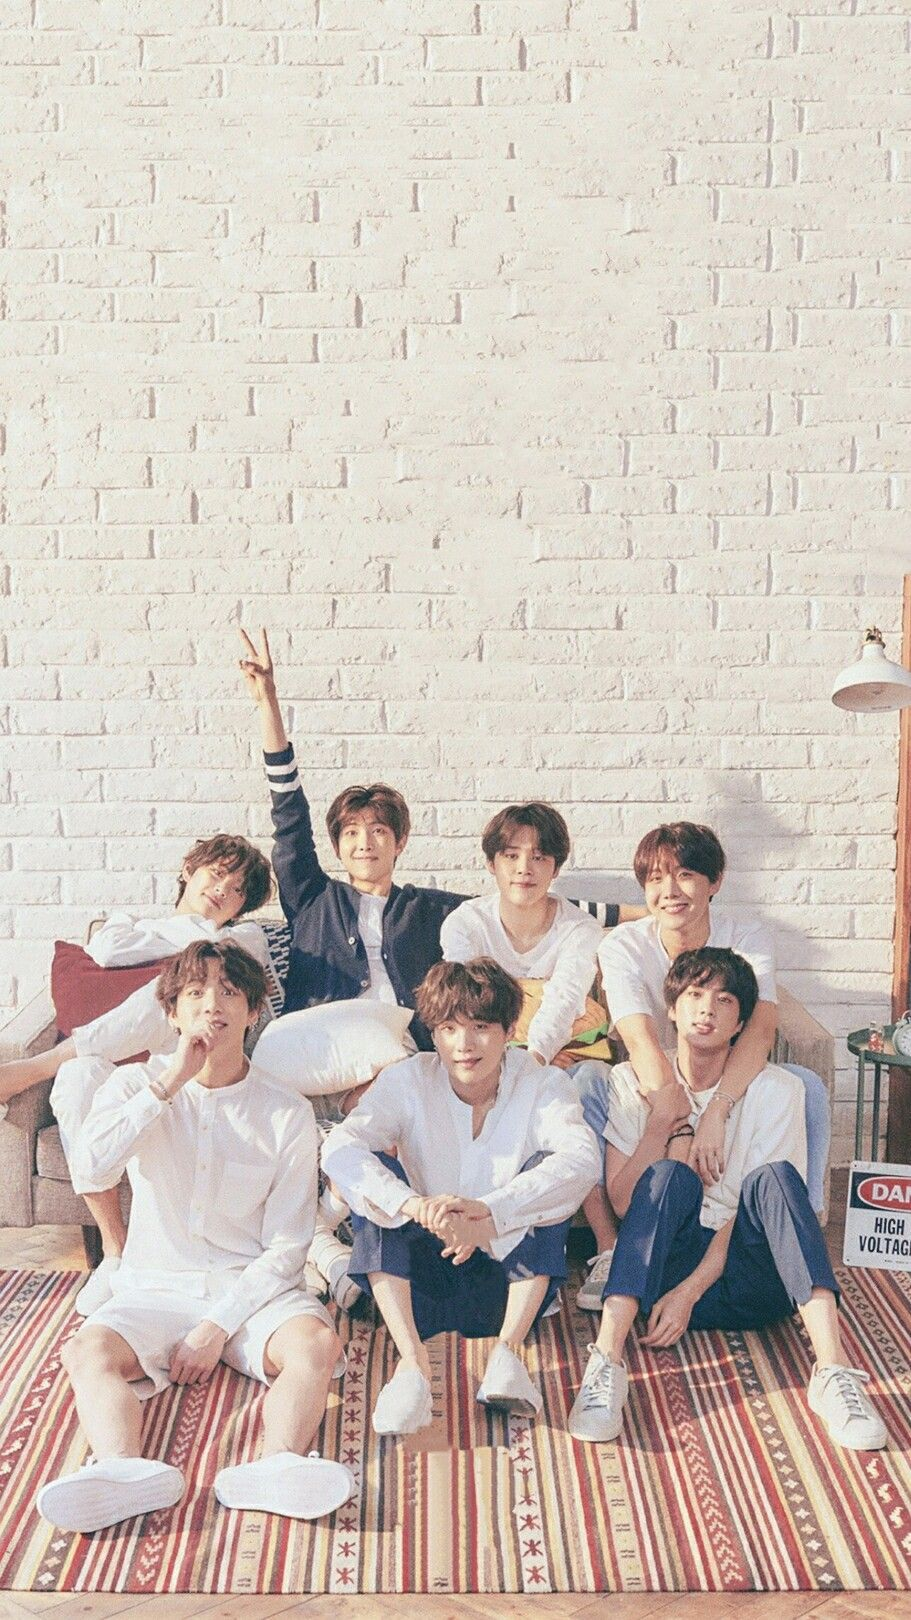 Bts Is The Best People In The World Jimin Bts Taehyung Gambar Bts Bts hd wallpaper cave